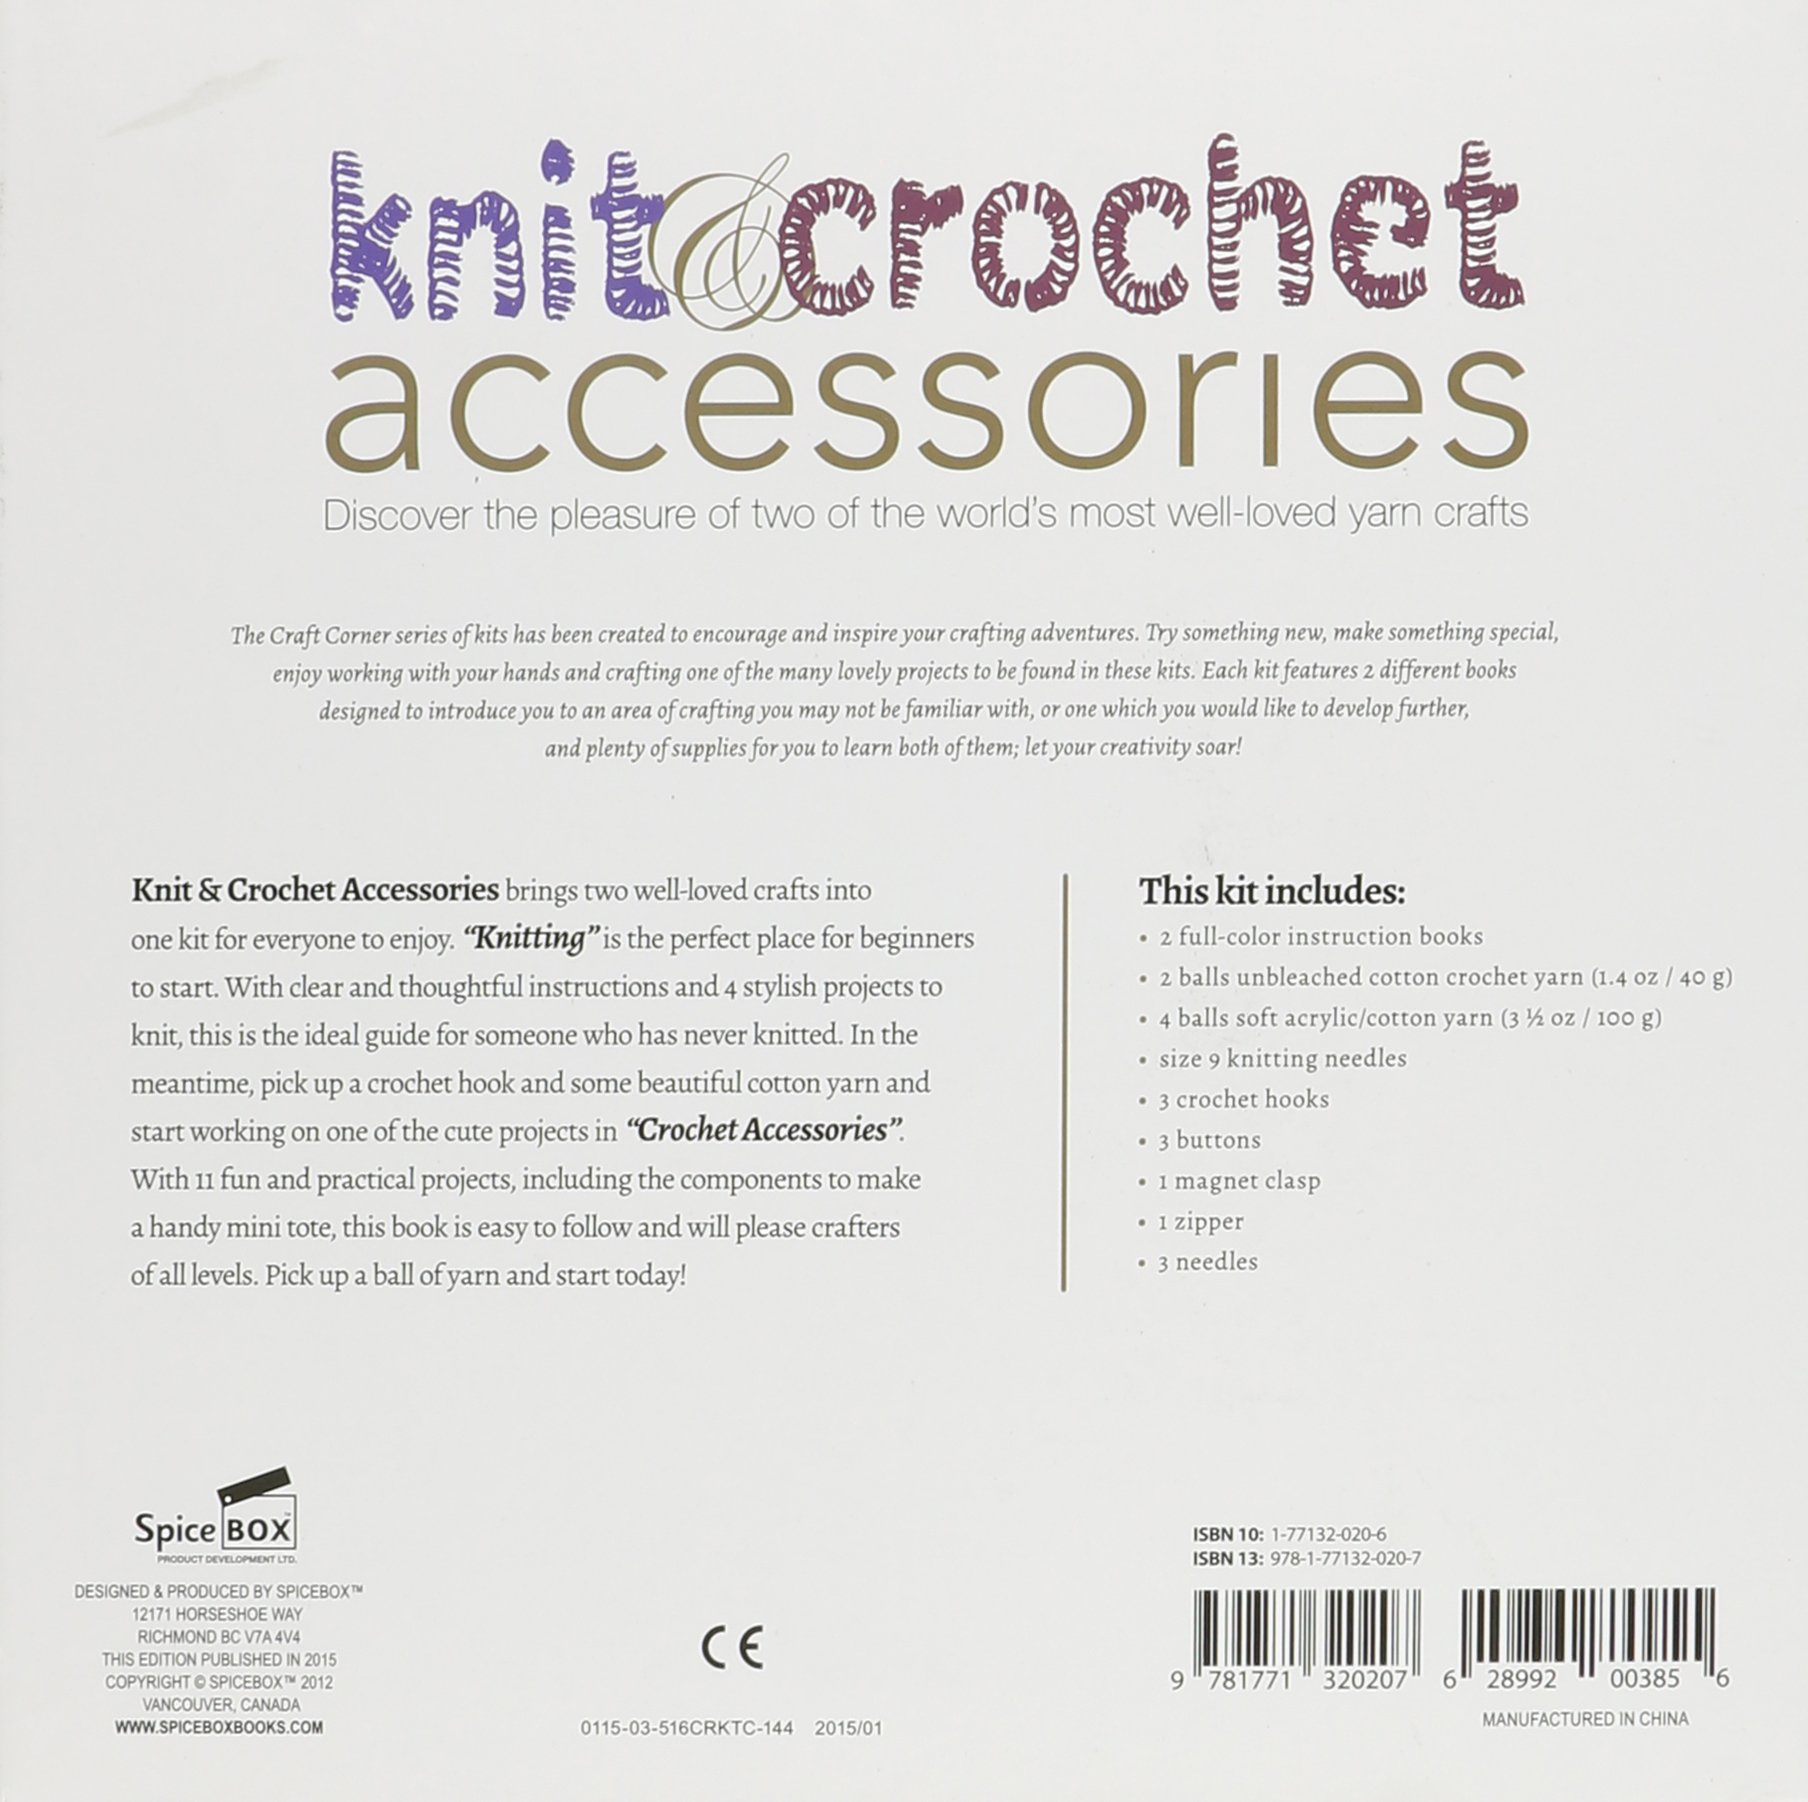 Knit & Crochet Accessories: Discover the Pleasure of Two of the World's Most Well-Loved Yarn Crafts (Craft Corner) by Spice Box (Image #2)